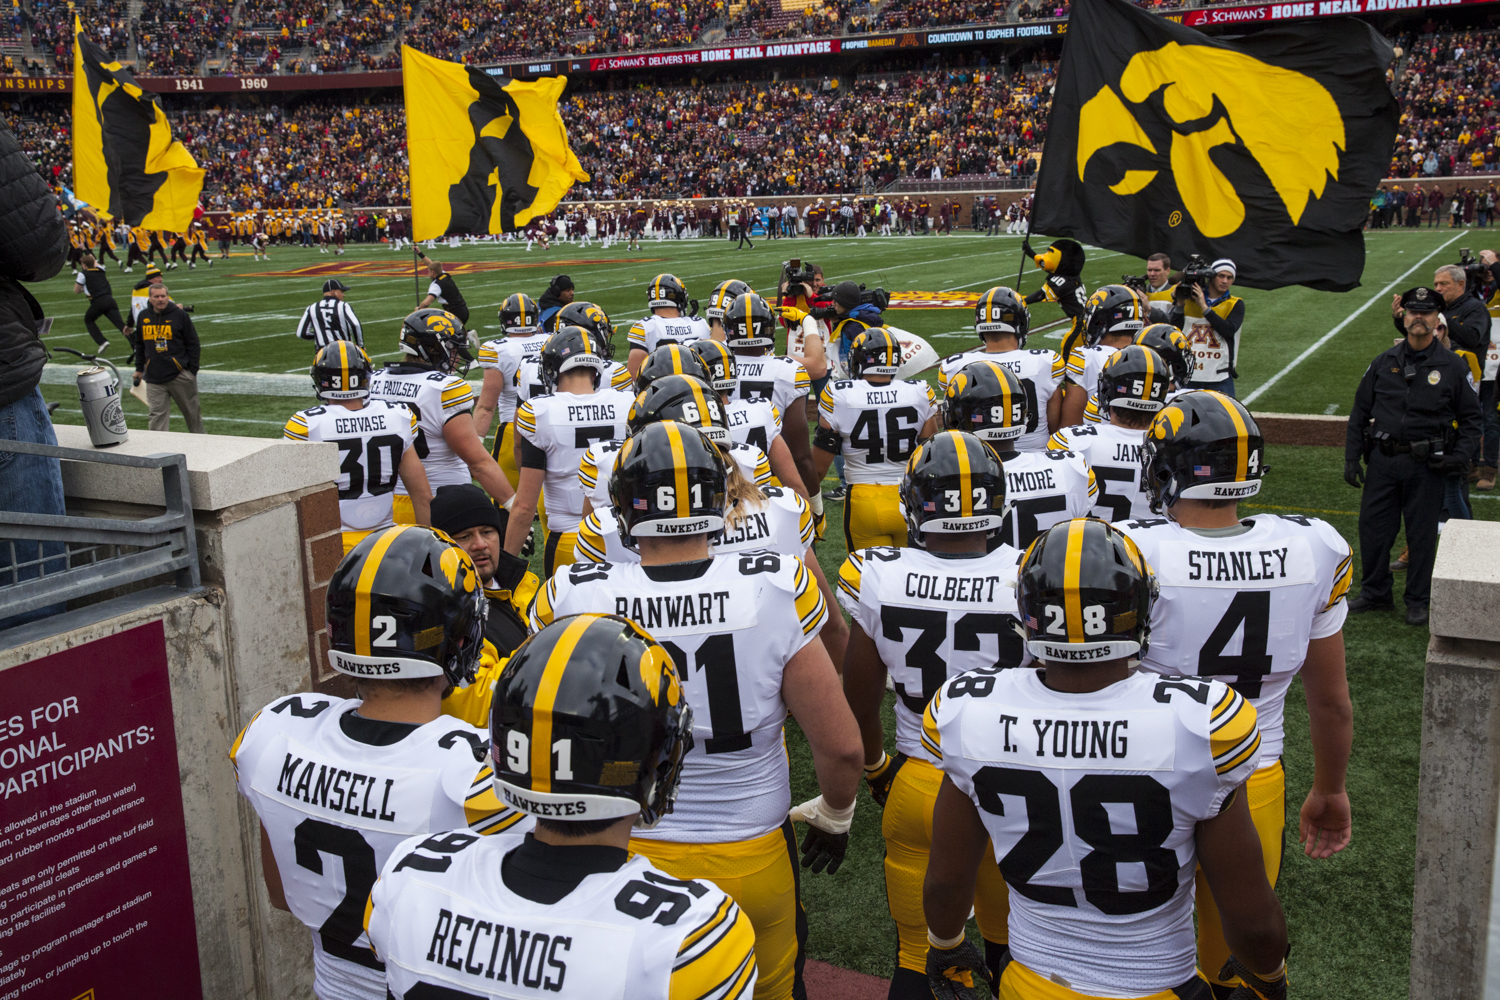 The+Hawkeyes+take+the+field+before+their+game+against+Minnesota+at+TCF+Bank+Stadium+on+Saturday%2C+October+6%2C+2018.+The+Hawkeyes+defeated+the+Golden+Gophers+48-31.